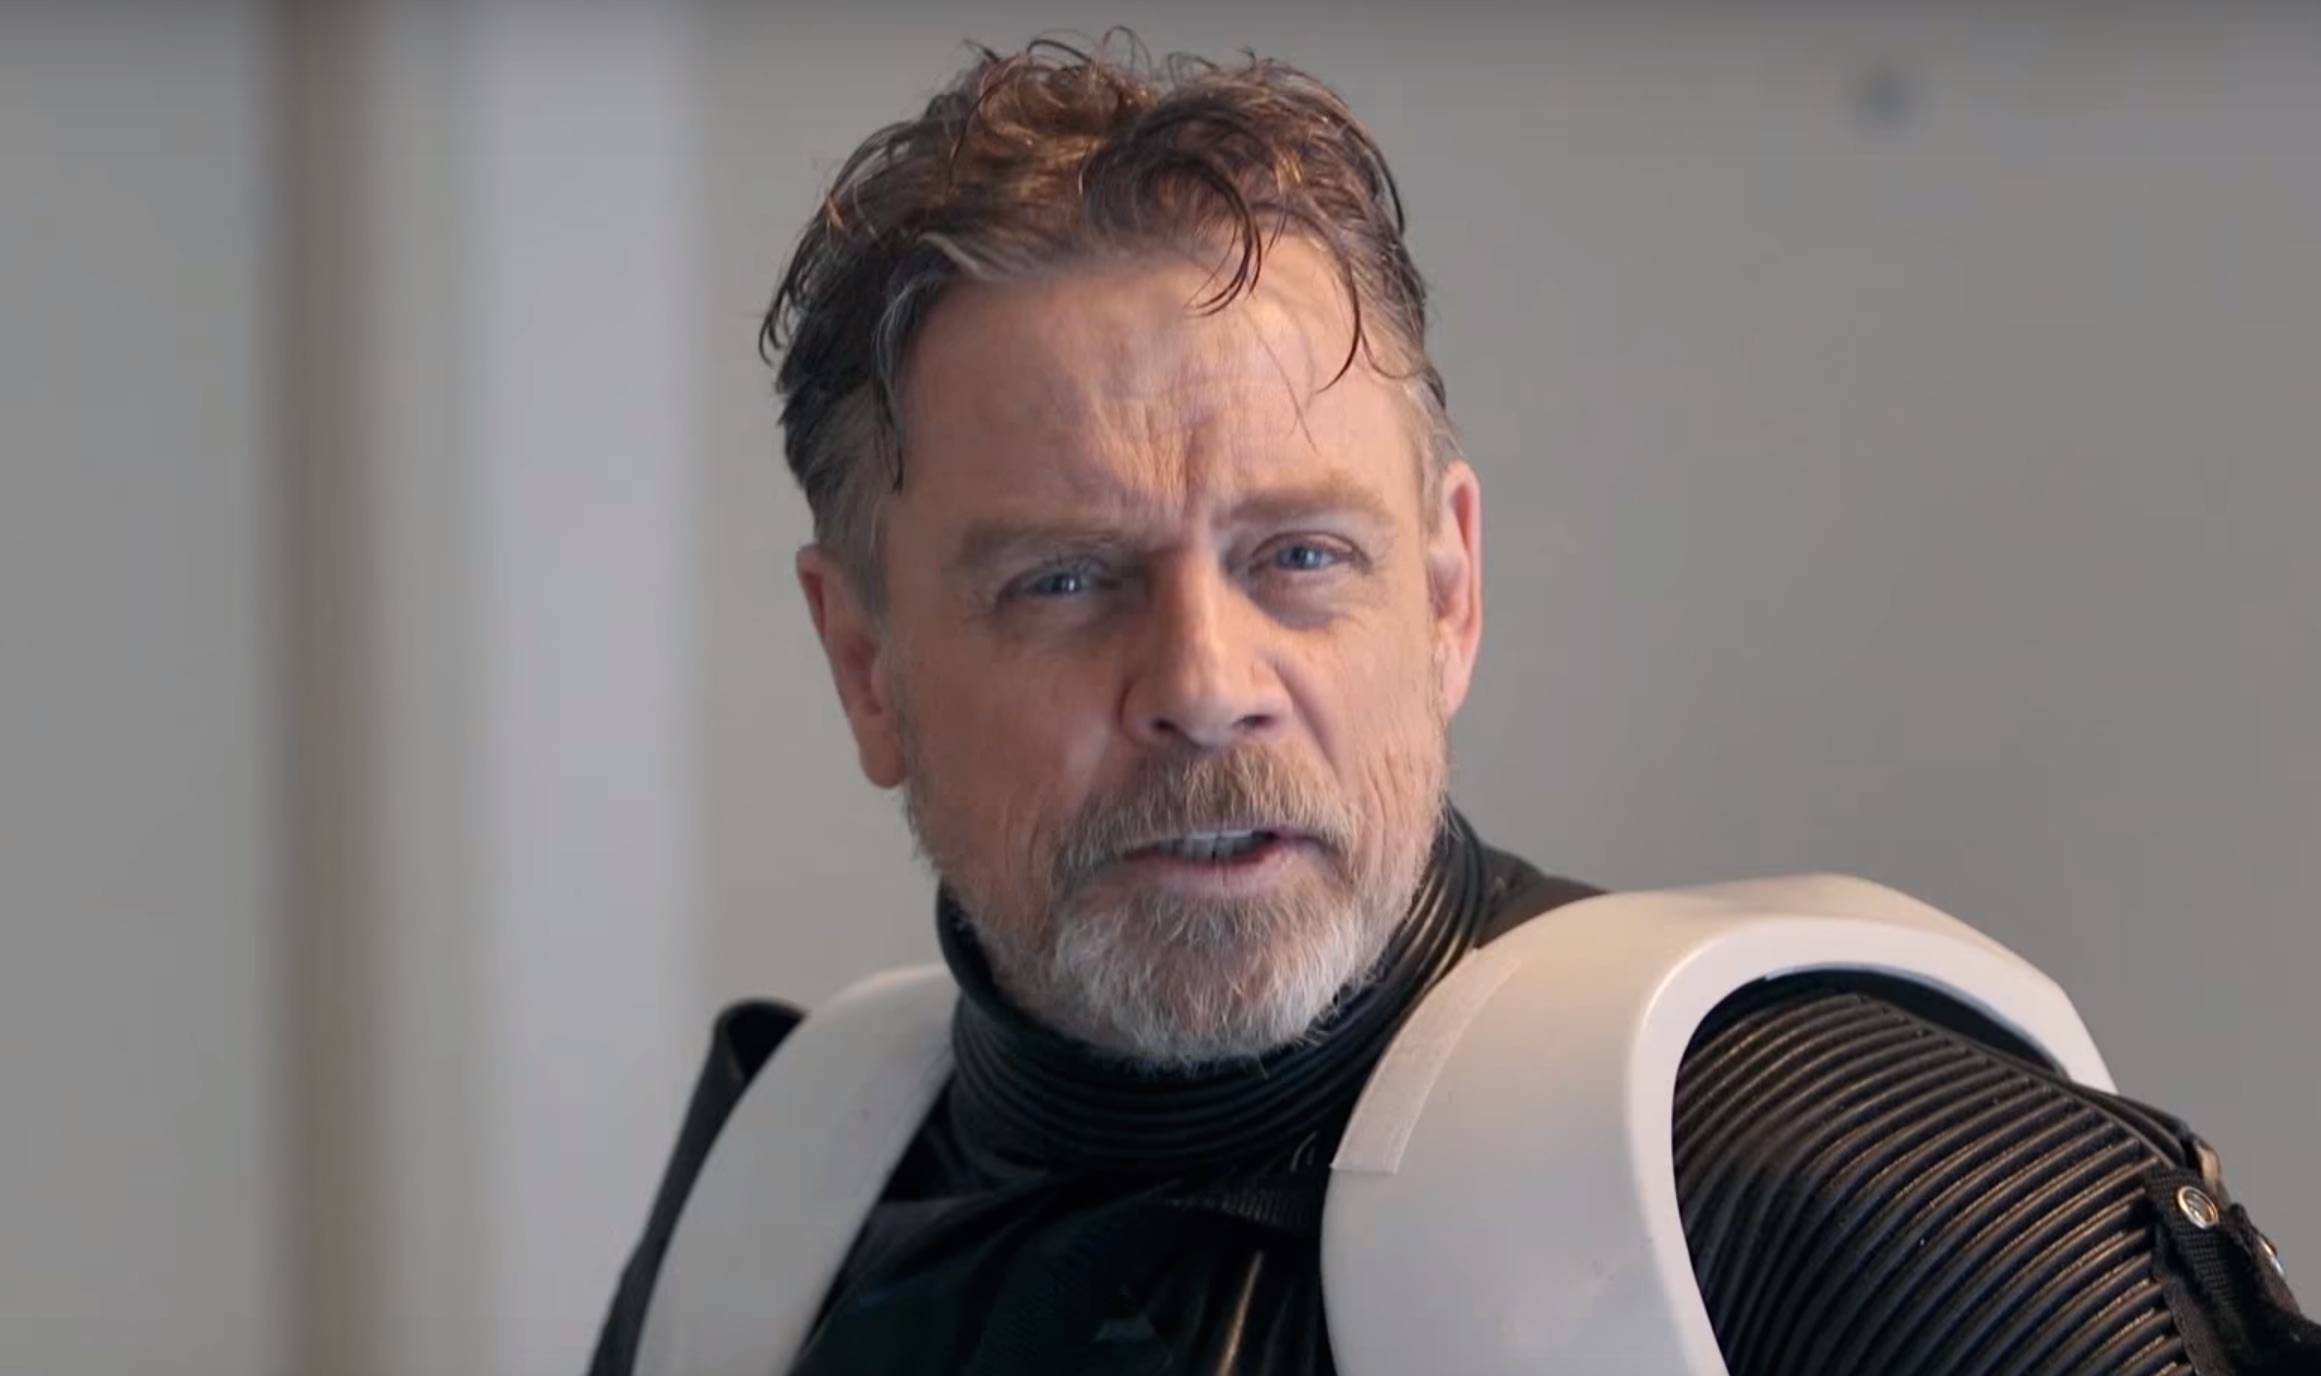 In a new video aimed to support The Force Awakens' Omaze campaign, Mark Hamill disguised himself as a stormtrooper & interacted with fans in Hollywood!